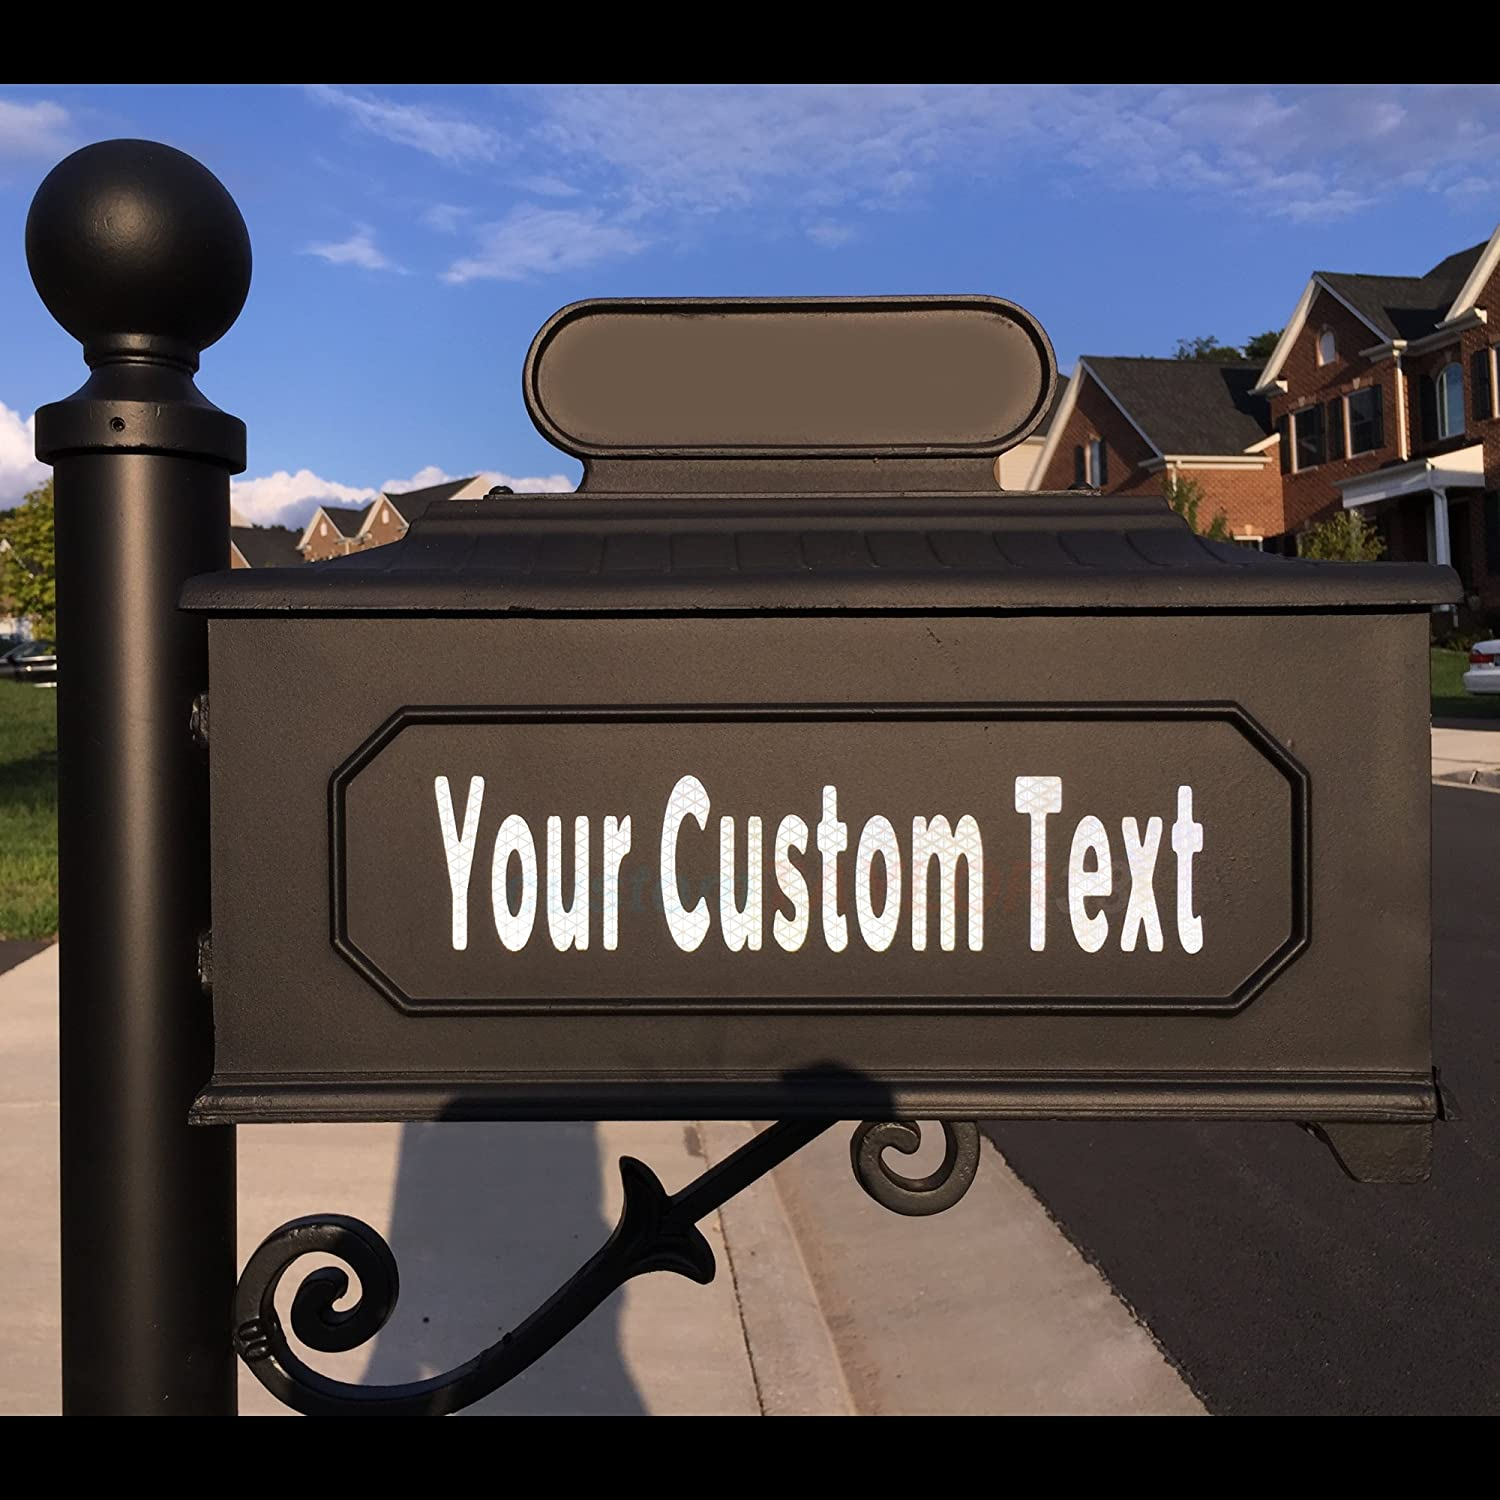 Apartments Houses Condos customTAYLOR33 High Intensity Grade Reflective Custom Mailbox Letters Numbers 3 inch Font Height, 2 Rows of Text Businesses